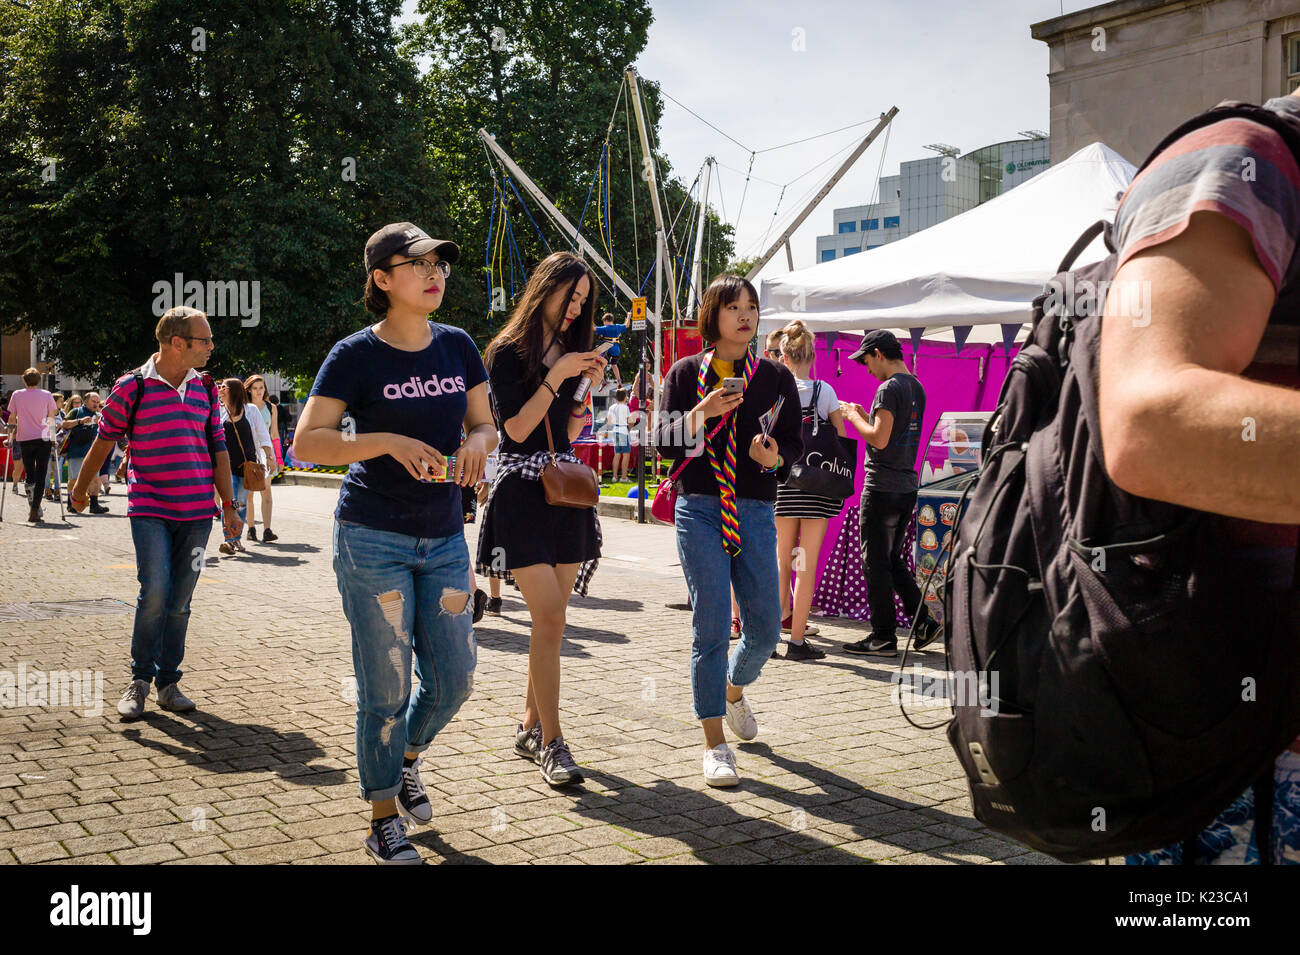 Three oriental girls walk through a Gay Pride event. Two of them are holding mobile phones. One is wearing torn jeans. All three are casually dressed. - Stock Image